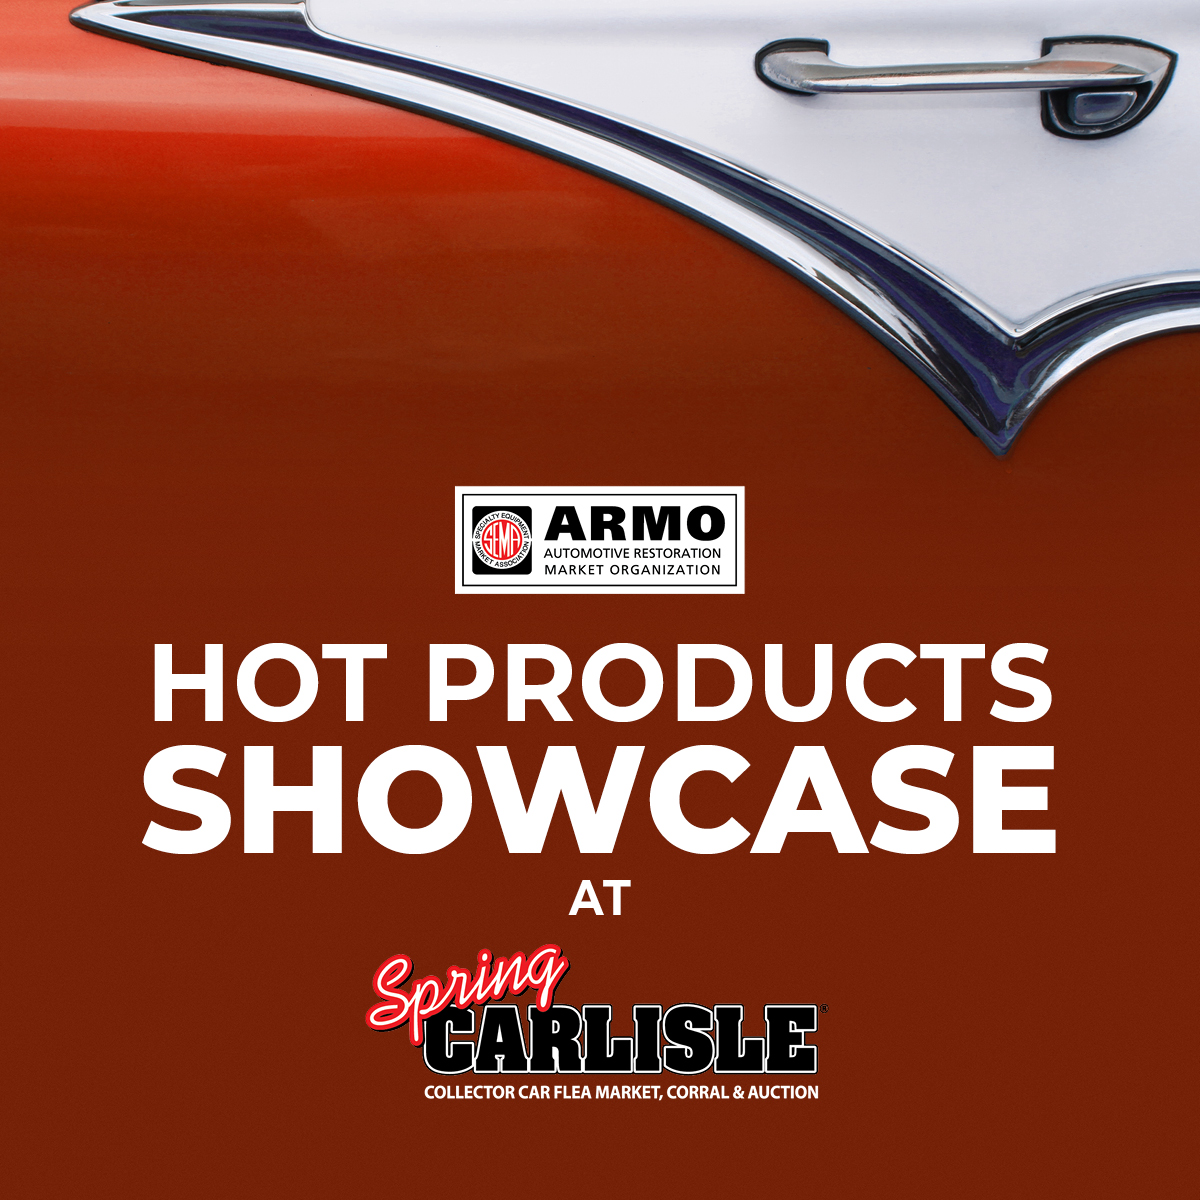 ARNO Hot Product Showcase - Feature